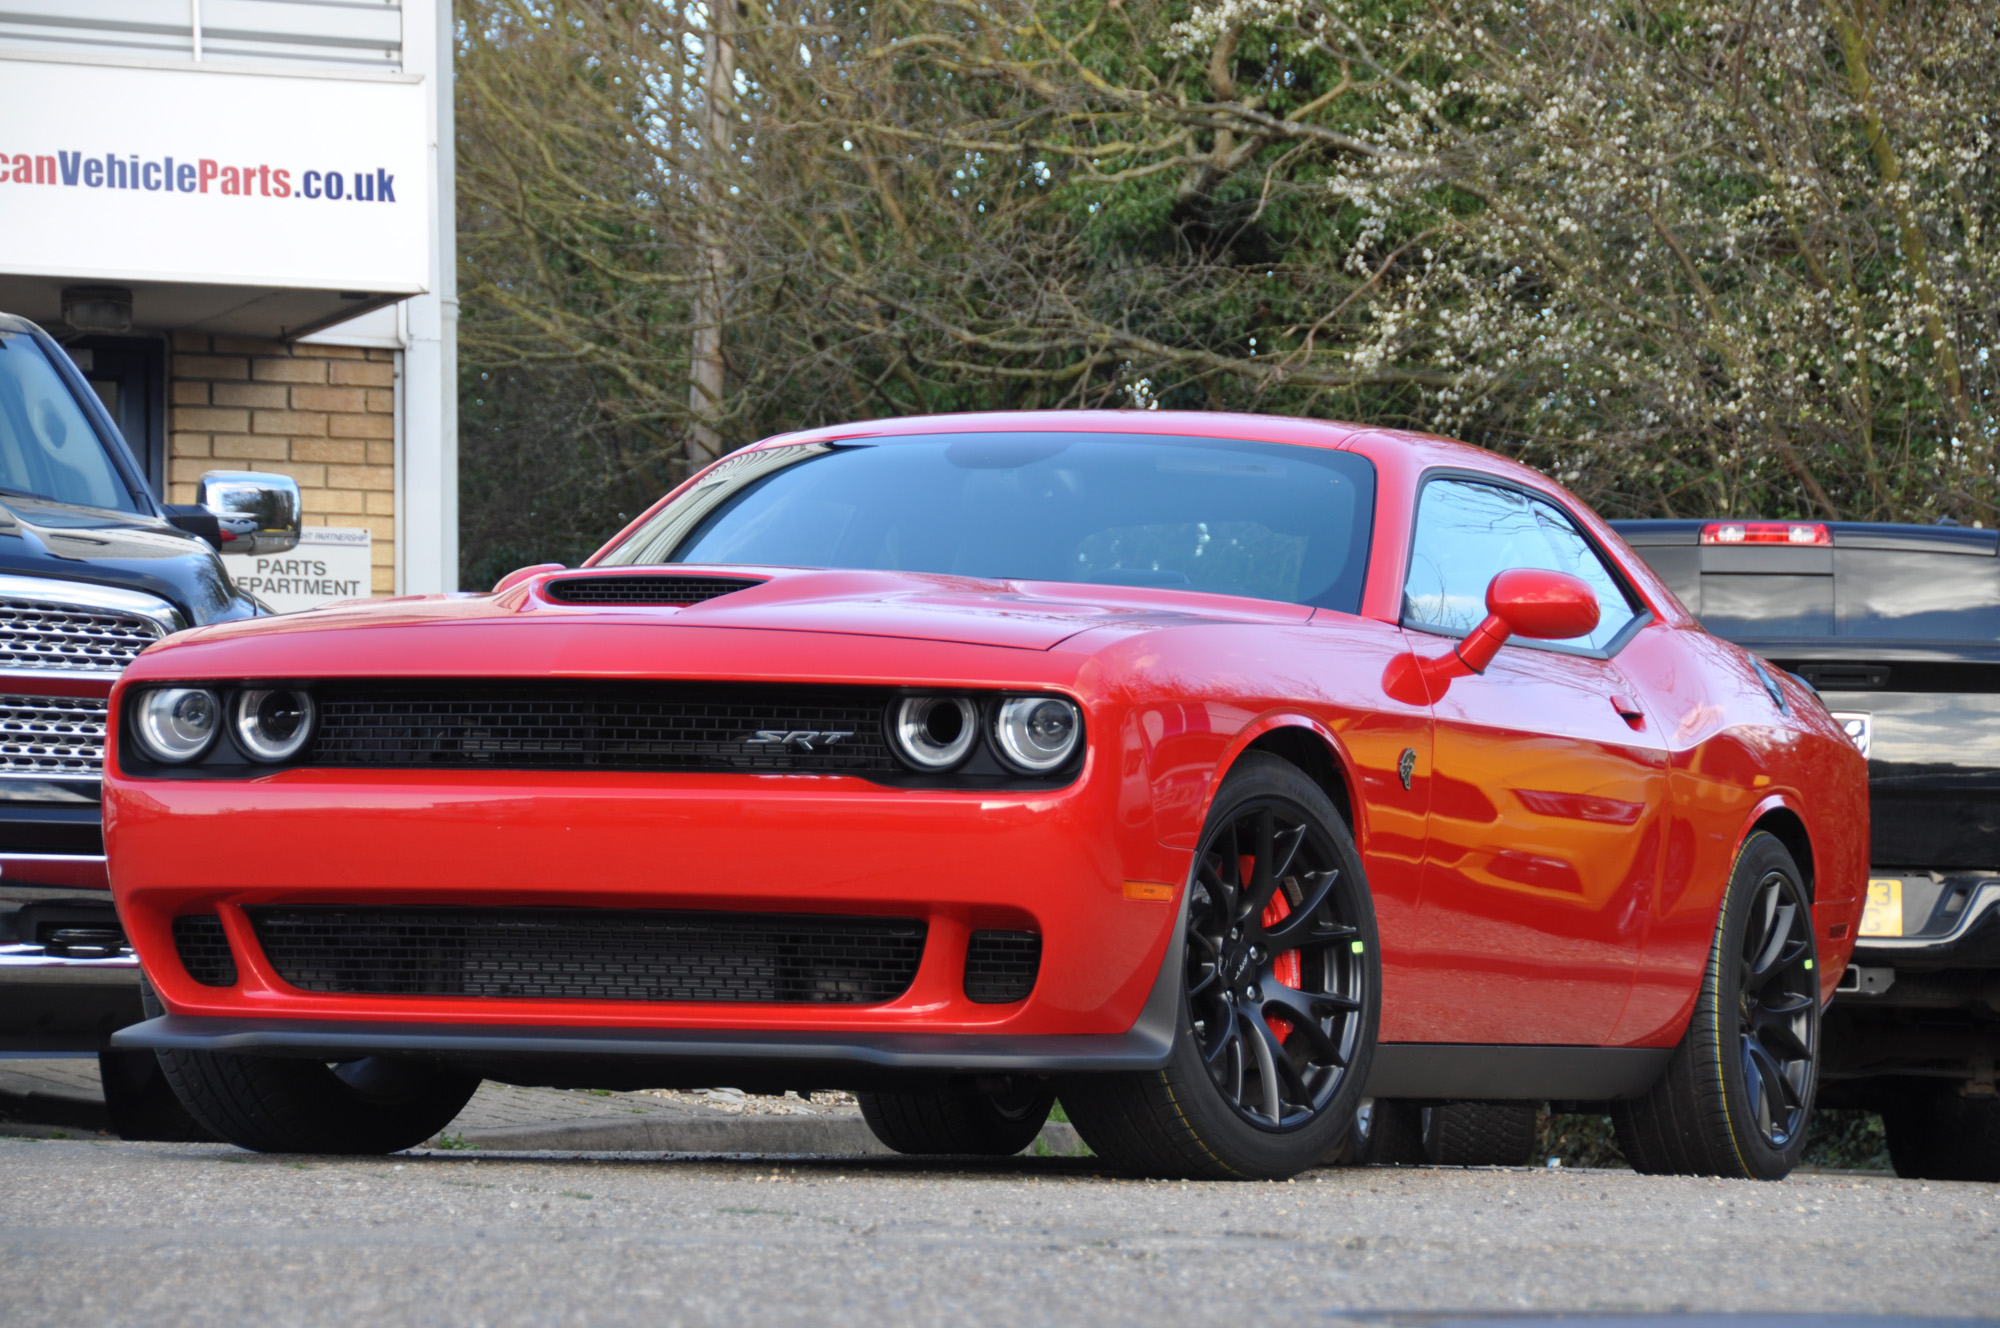 2016 challenger hellcat uk registered 500 miles tor red. Black Bedroom Furniture Sets. Home Design Ideas